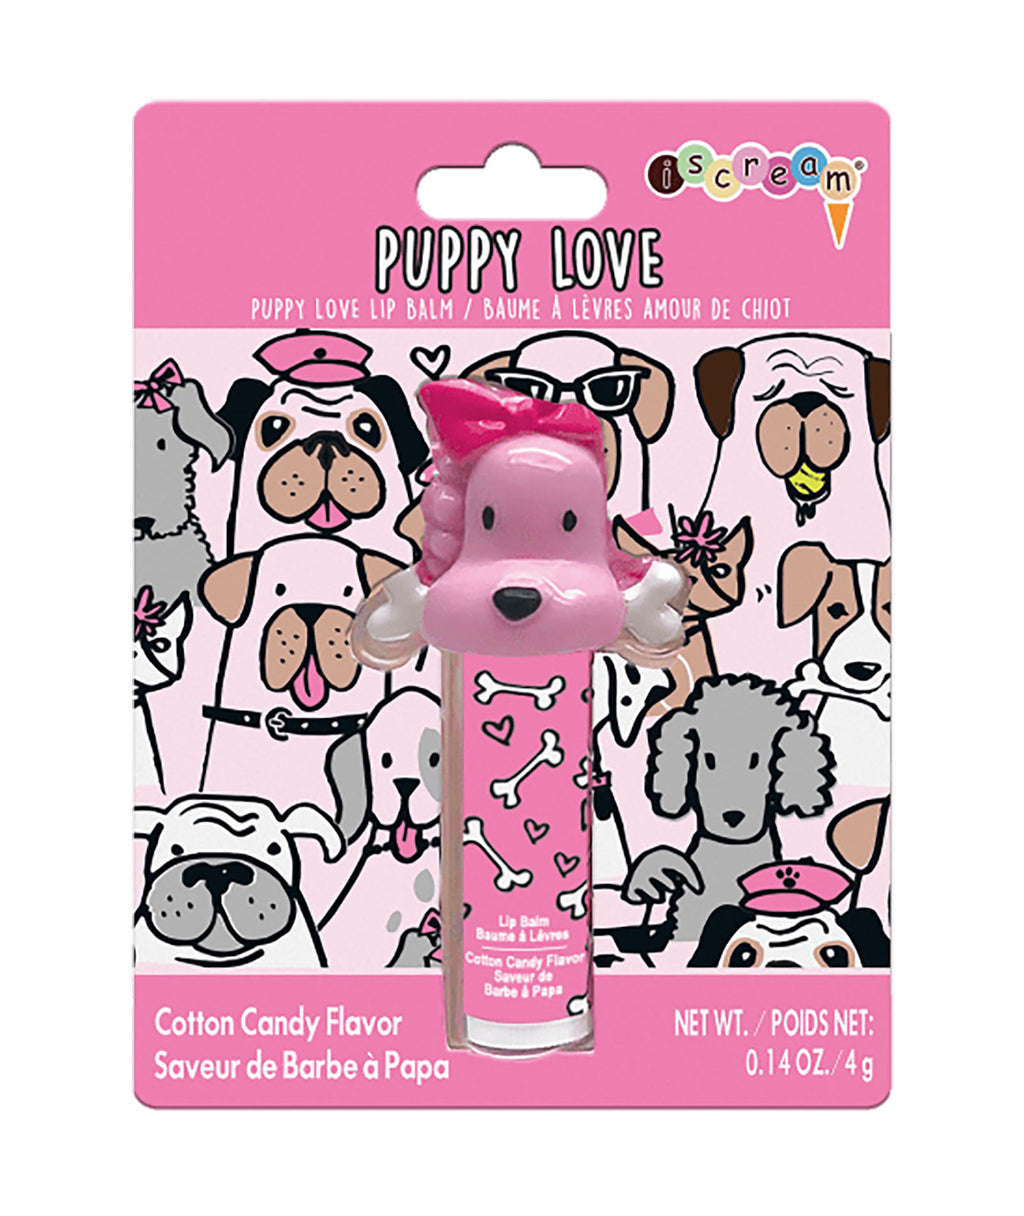 iScream Puppy Love Lip Balm